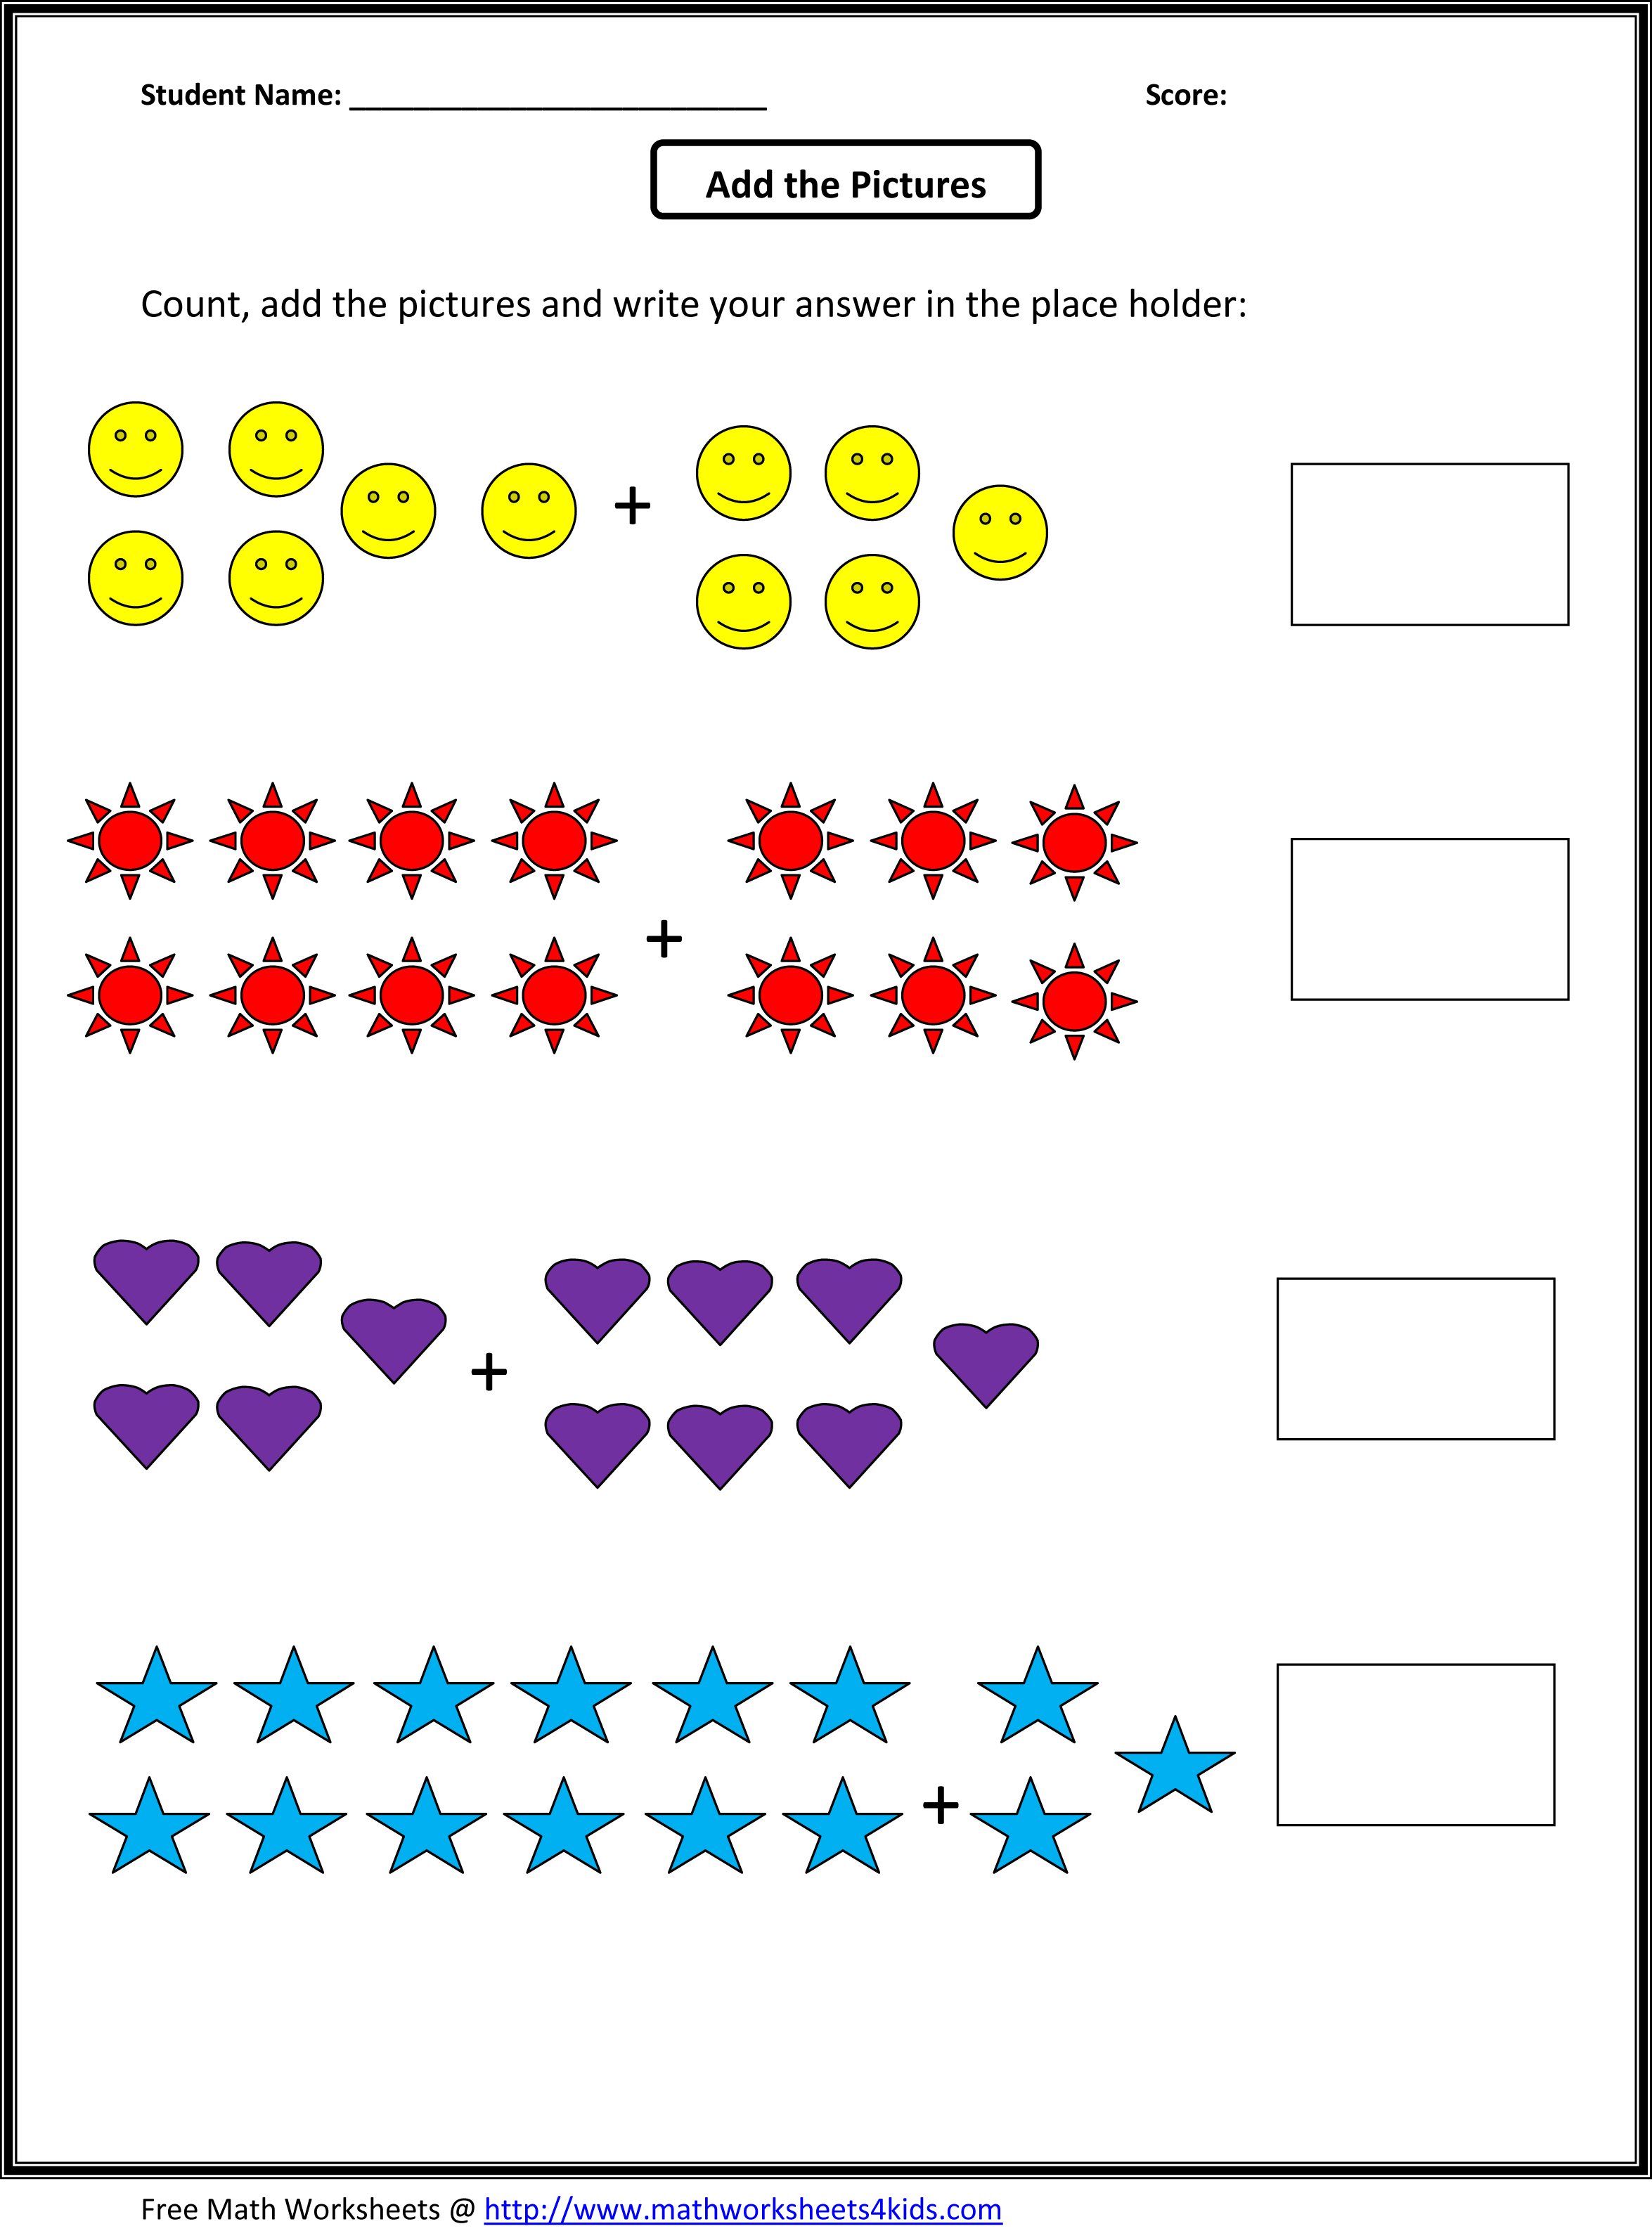 Weirdmailus  Remarkable Grade  Maths Worksheet  Reocurent With Inspiring Math Worksheets For St Grade Free  Reocurent With Beautiful Printable High School Grammar Worksheets Also Series Of Operations Worksheets In Addition Pronouns Subject And Object Worksheets And Times Tables   Worksheet As Well As Potential Or Kinetic Energy Worksheet Additionally Non Cash Charitable Contributions Worksheet From Reocurentcom With Weirdmailus  Inspiring Grade  Maths Worksheet  Reocurent With Beautiful Math Worksheets For St Grade Free  Reocurent And Remarkable Printable High School Grammar Worksheets Also Series Of Operations Worksheets In Addition Pronouns Subject And Object Worksheets From Reocurentcom